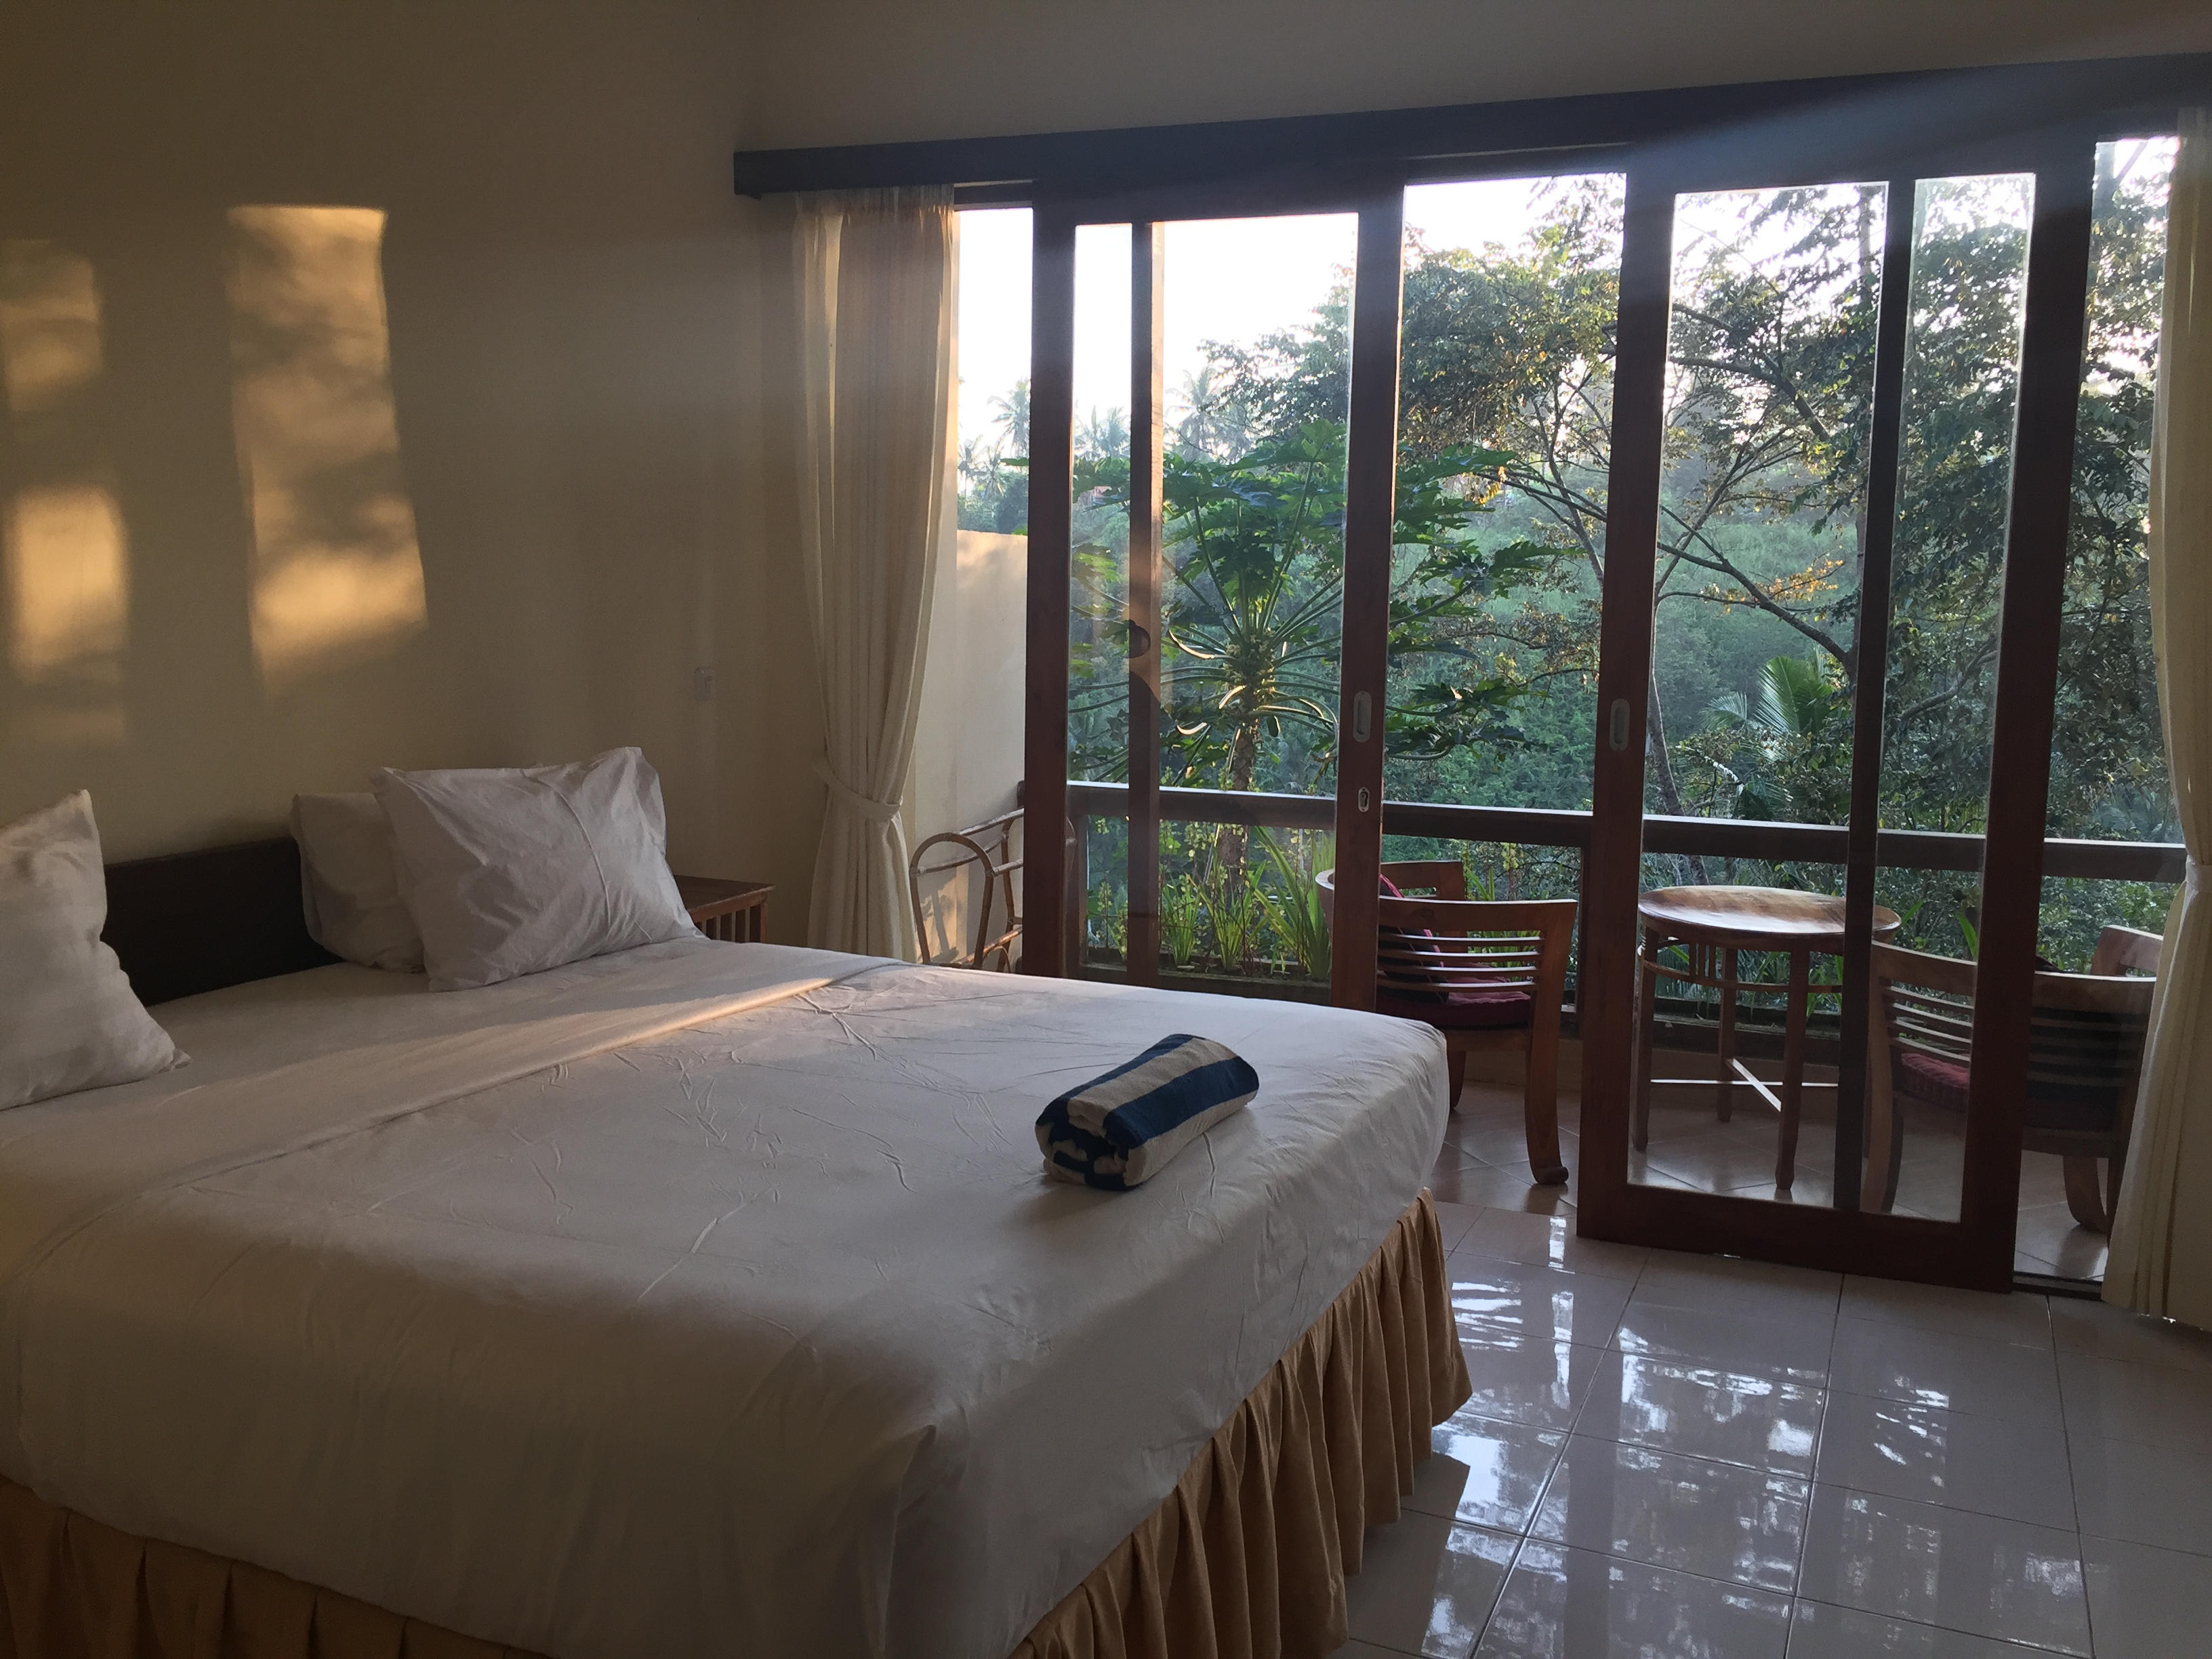 D Tepi Ubud House And Yoga Retreat Bed And Breakfasts For Rent In Ubud Bali Indonesia